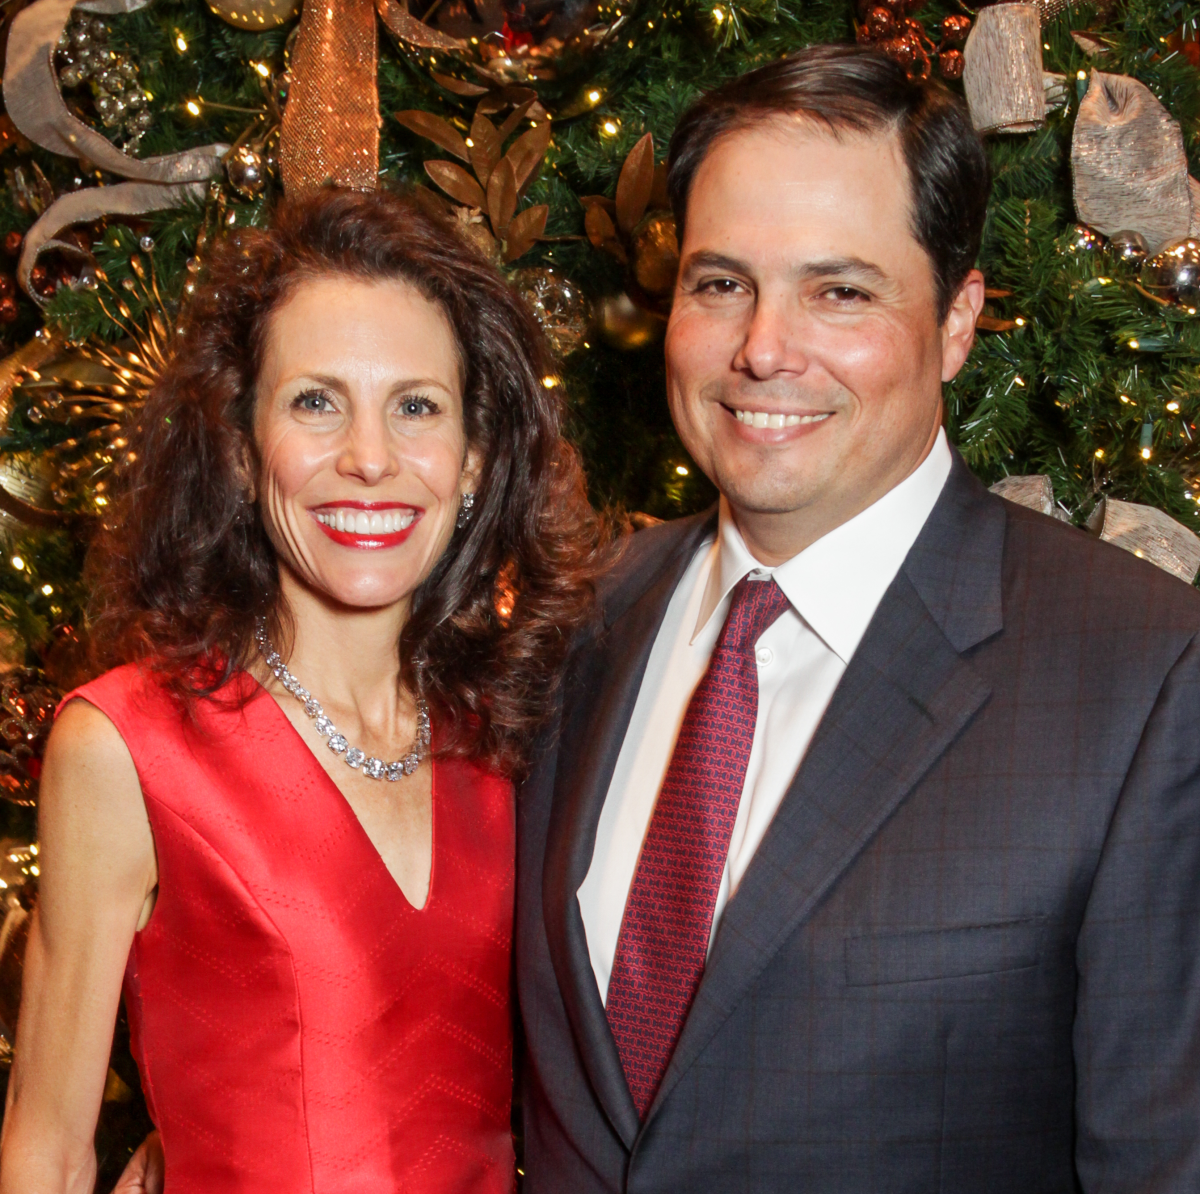 News, Greater Houston Women's Chamber of Commerce Gala, Dec. 2015, Gina and Carl L una